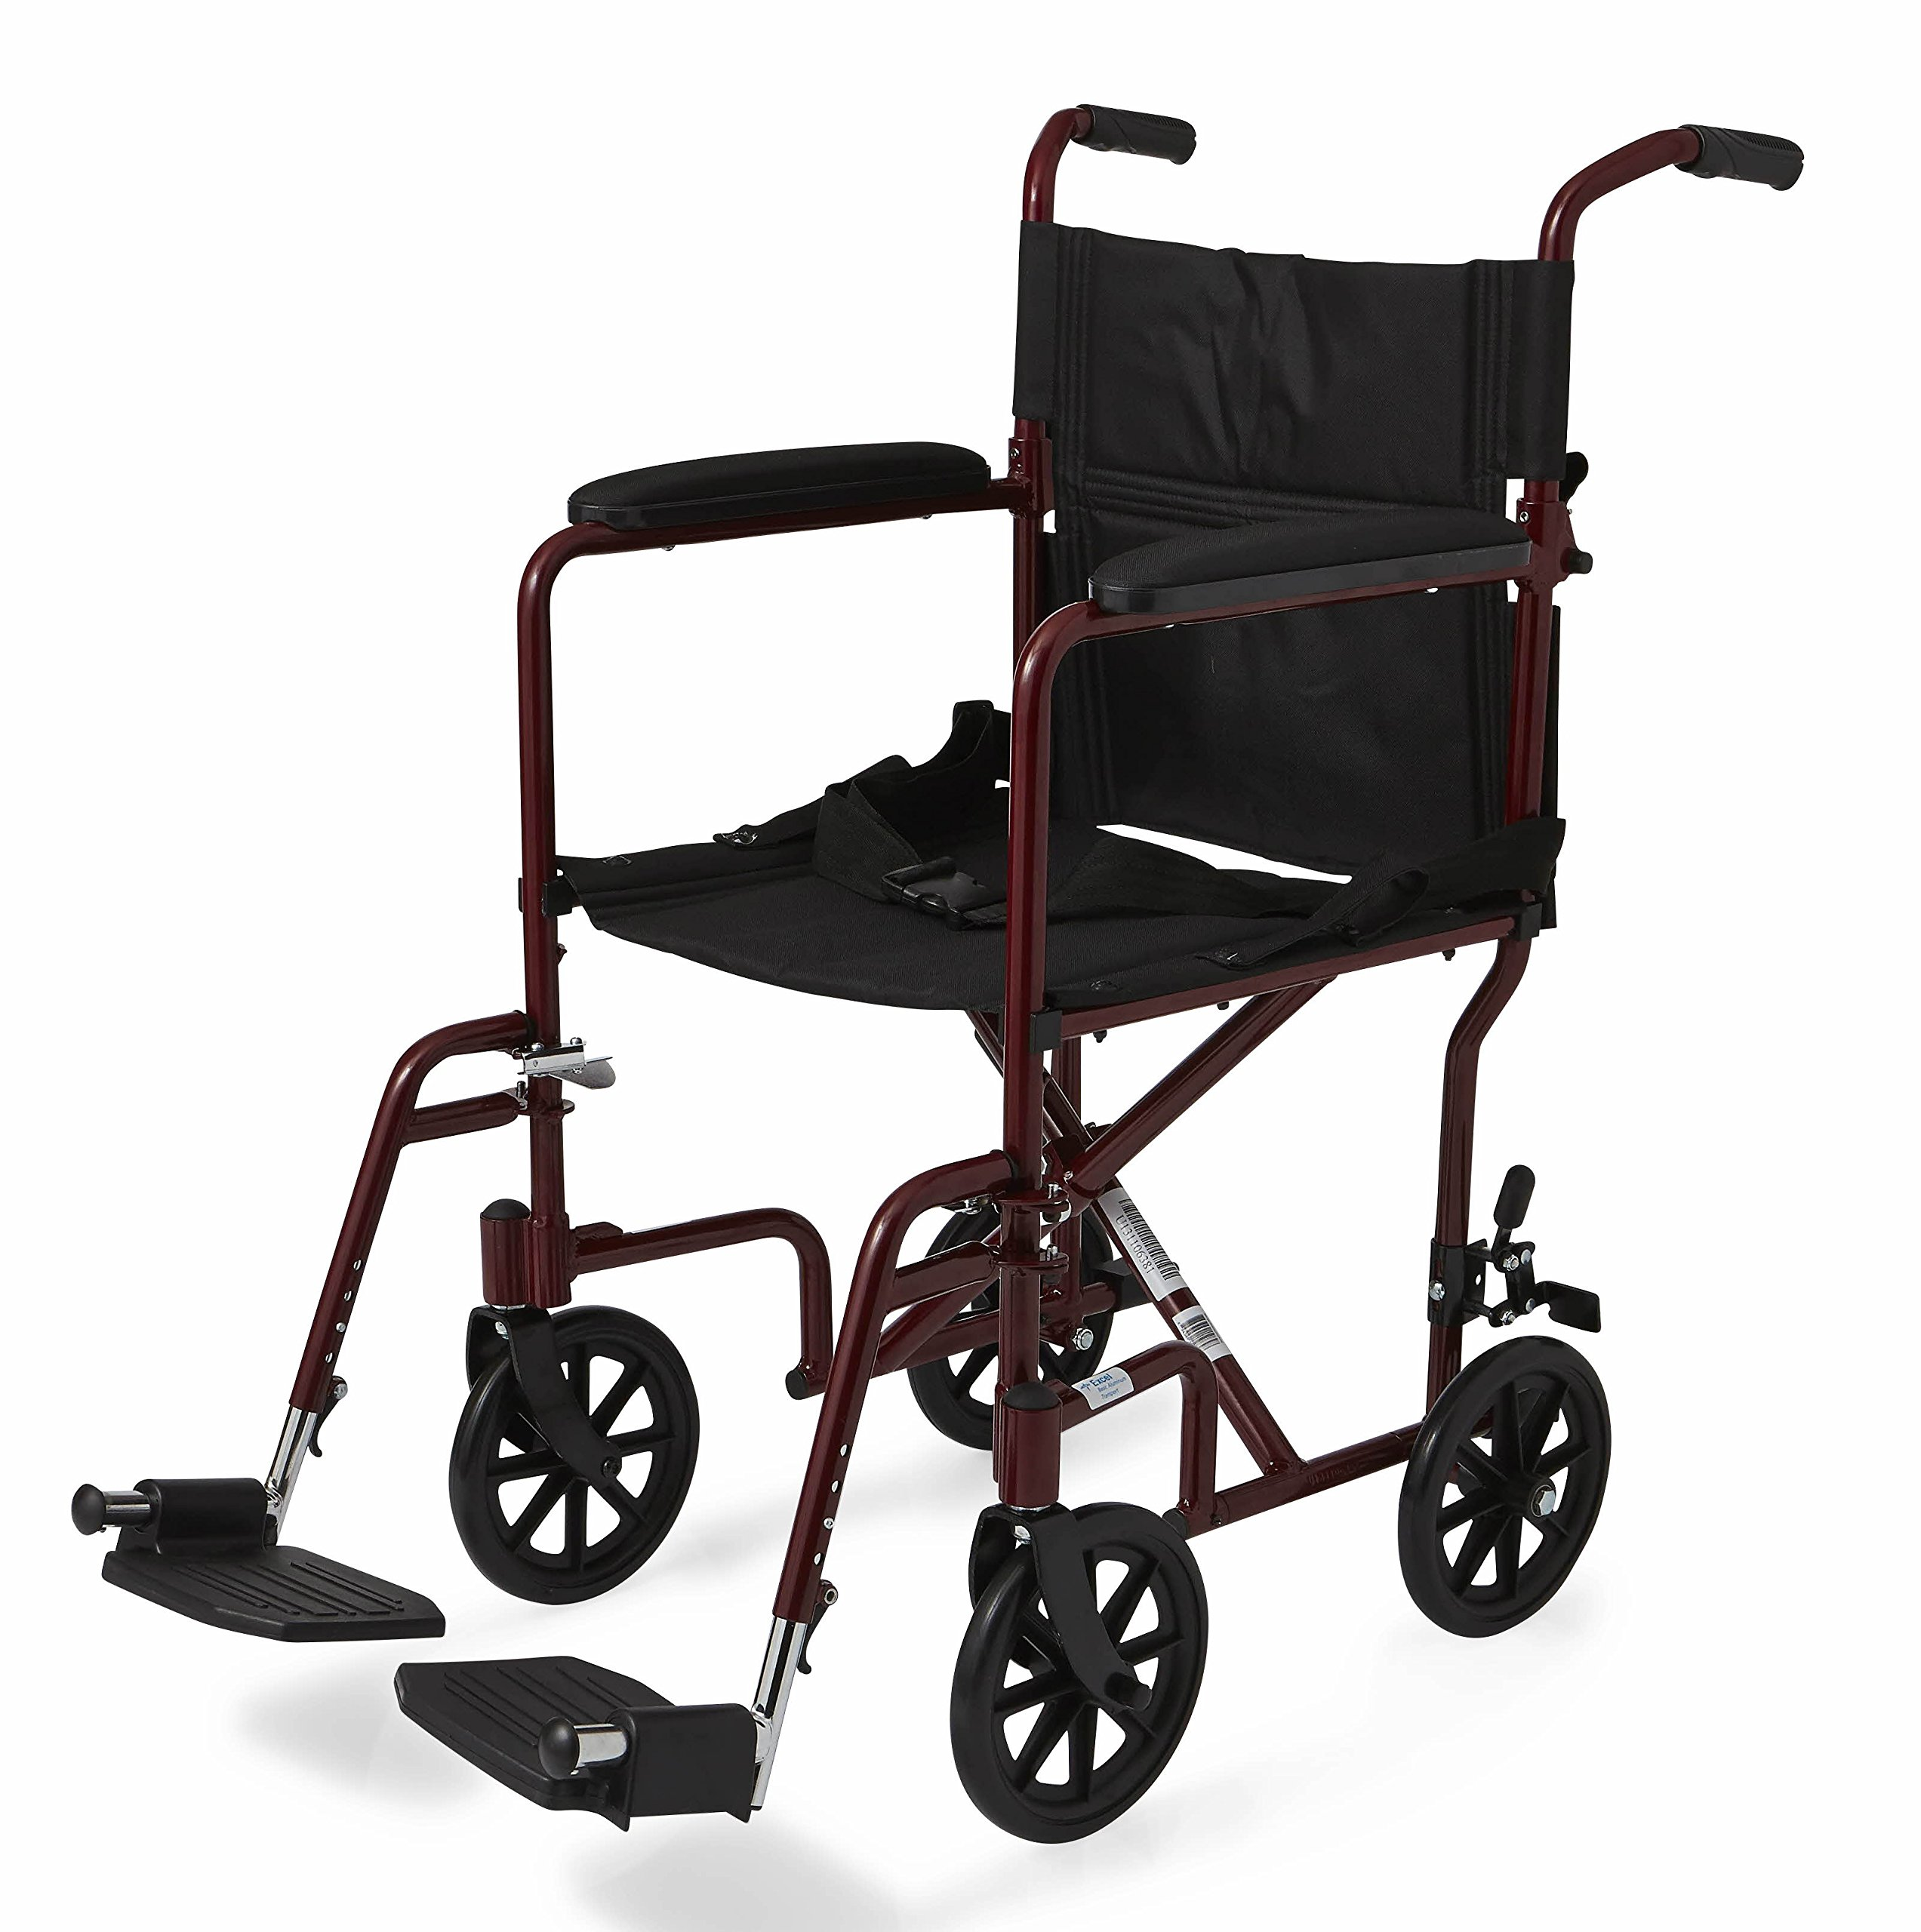 Medline Aluminum Transport Chair with Wheels, Red, 8 inch by Medline